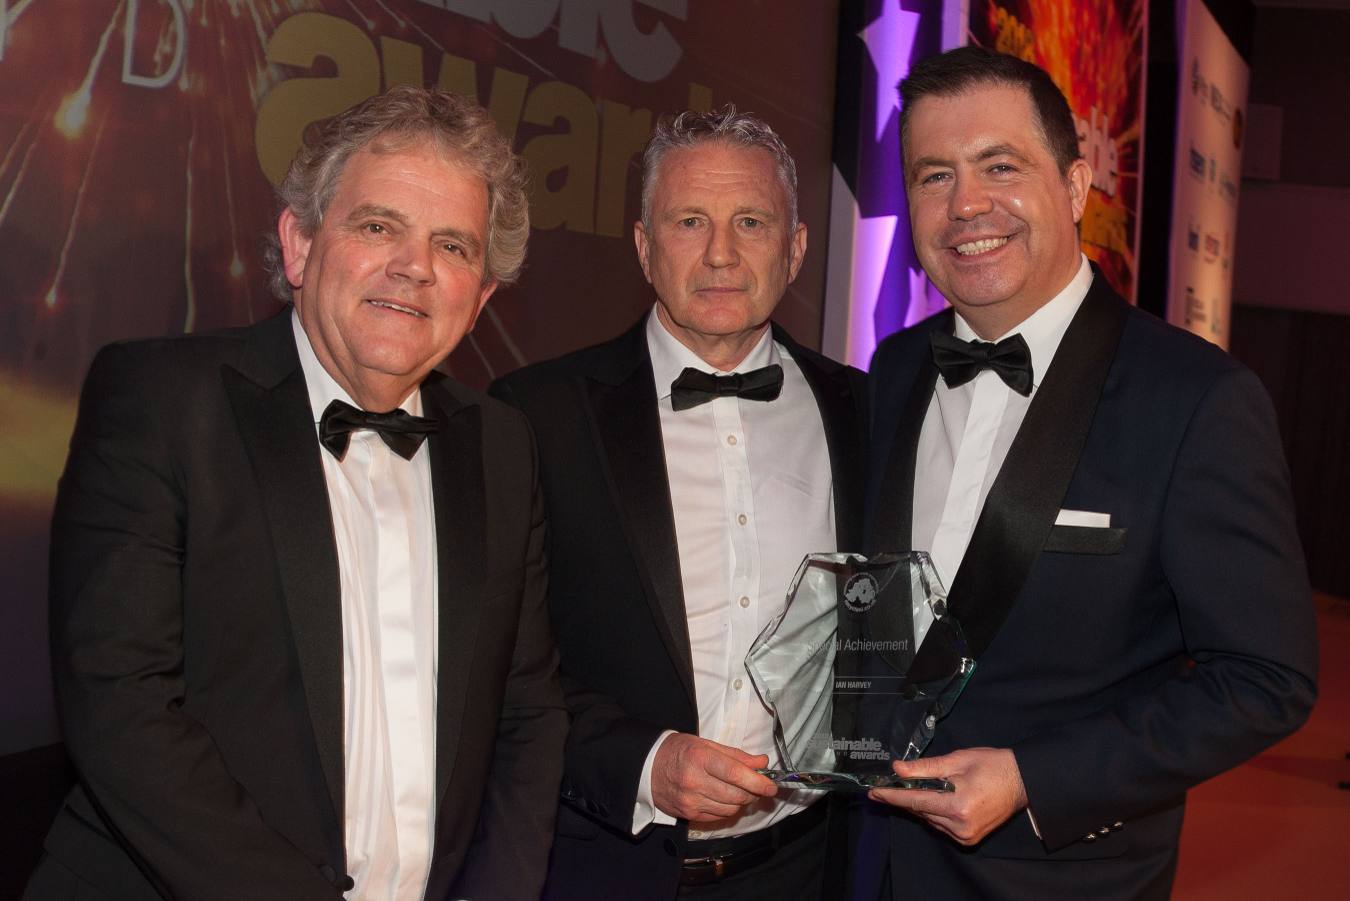 A Winning Night at the Sustainable Ireland Awards 2018